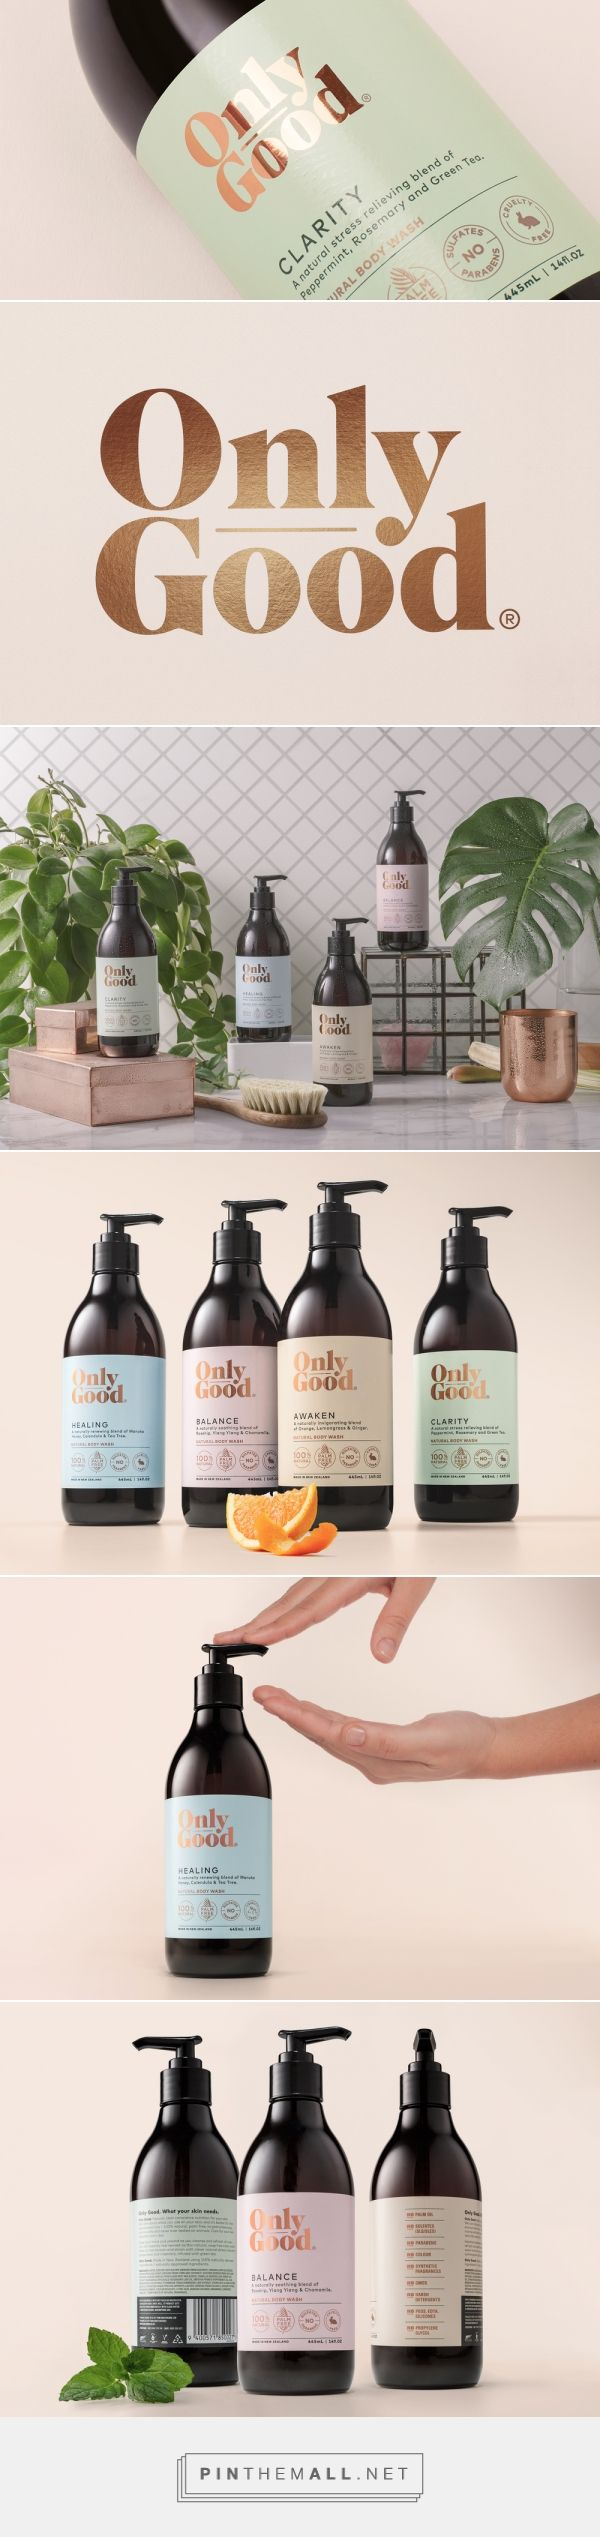 Label / cosmetics / Only Good — The Dieline - Branding & Packaging - created via http://pinthemall.net